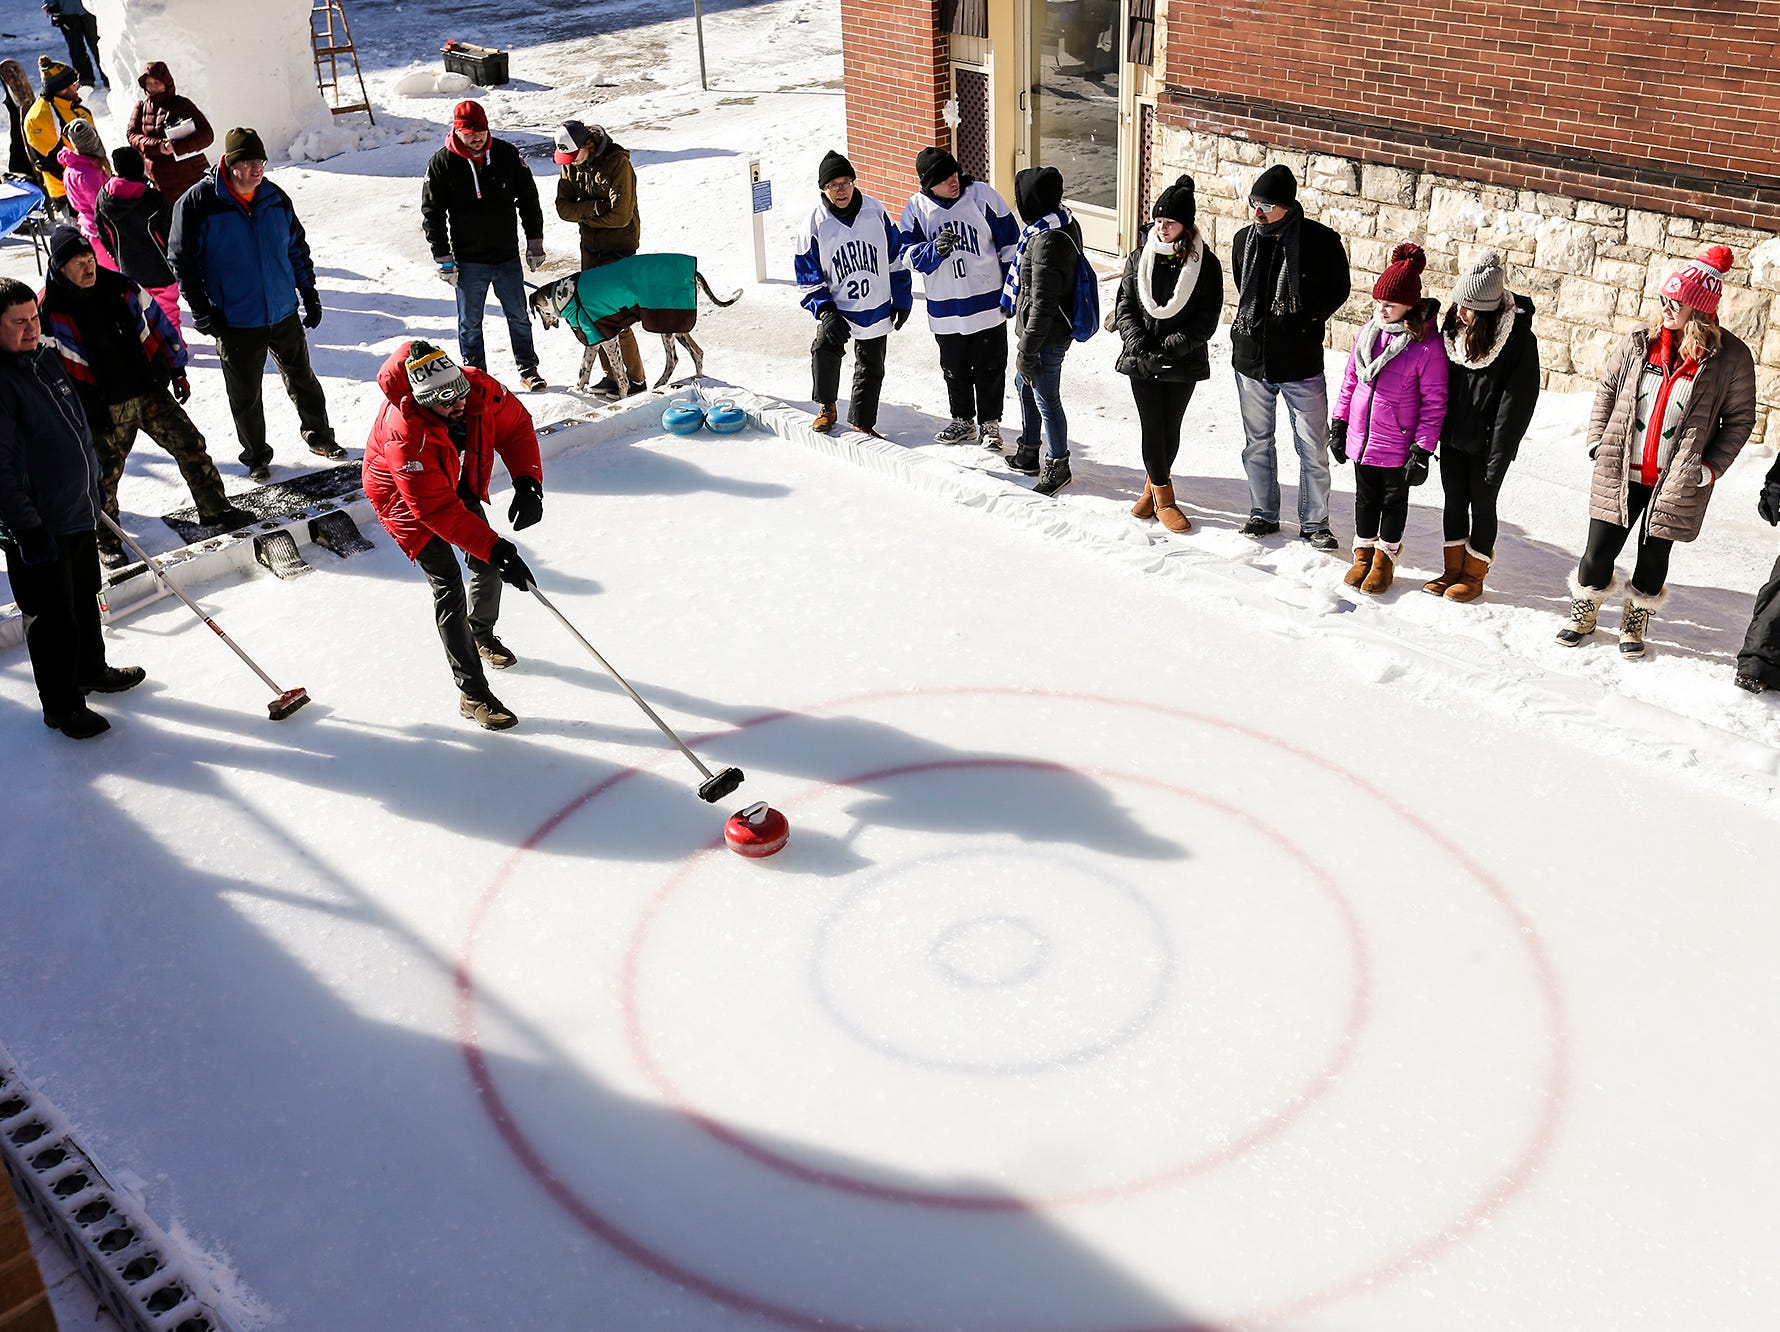 Eric Toney of Fond du Lac takes part in a curling game Saturday, February 9, 2019 in downtown Fond du Lac during Sturgeon Spectacular. Sturgeon Spectacular is a weeklong celebration of the lake sturgeon spearing season and includes events on and off the ice in the Fond du Lac area. Doug Raflik/USA TODAY NETWORK-Wisconsin